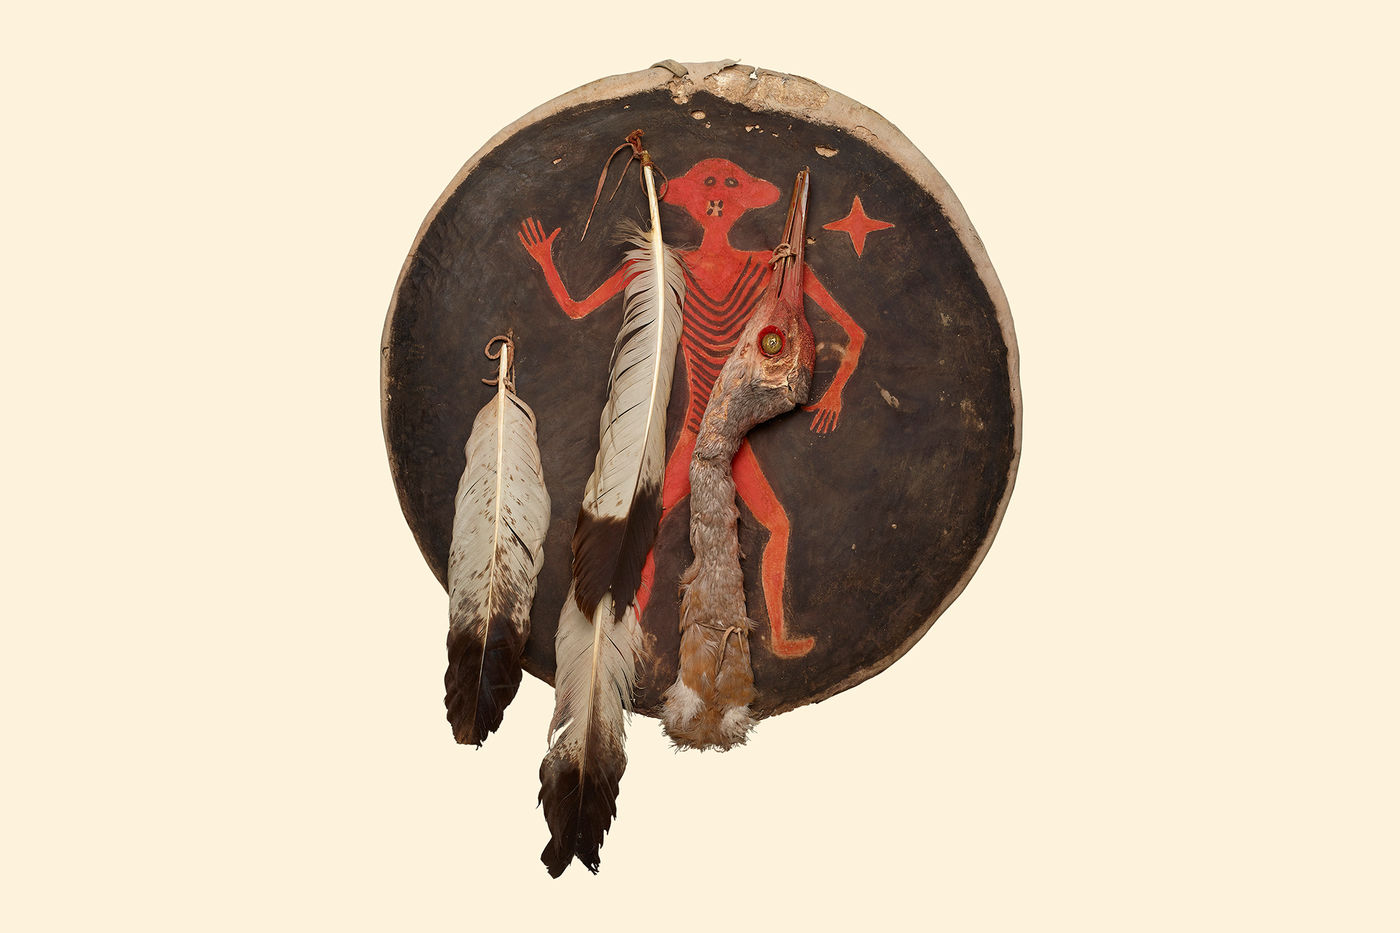 A round shield painted with a red figure in the center and a black background. Feathers and the head of a bird are tied onto the shield.